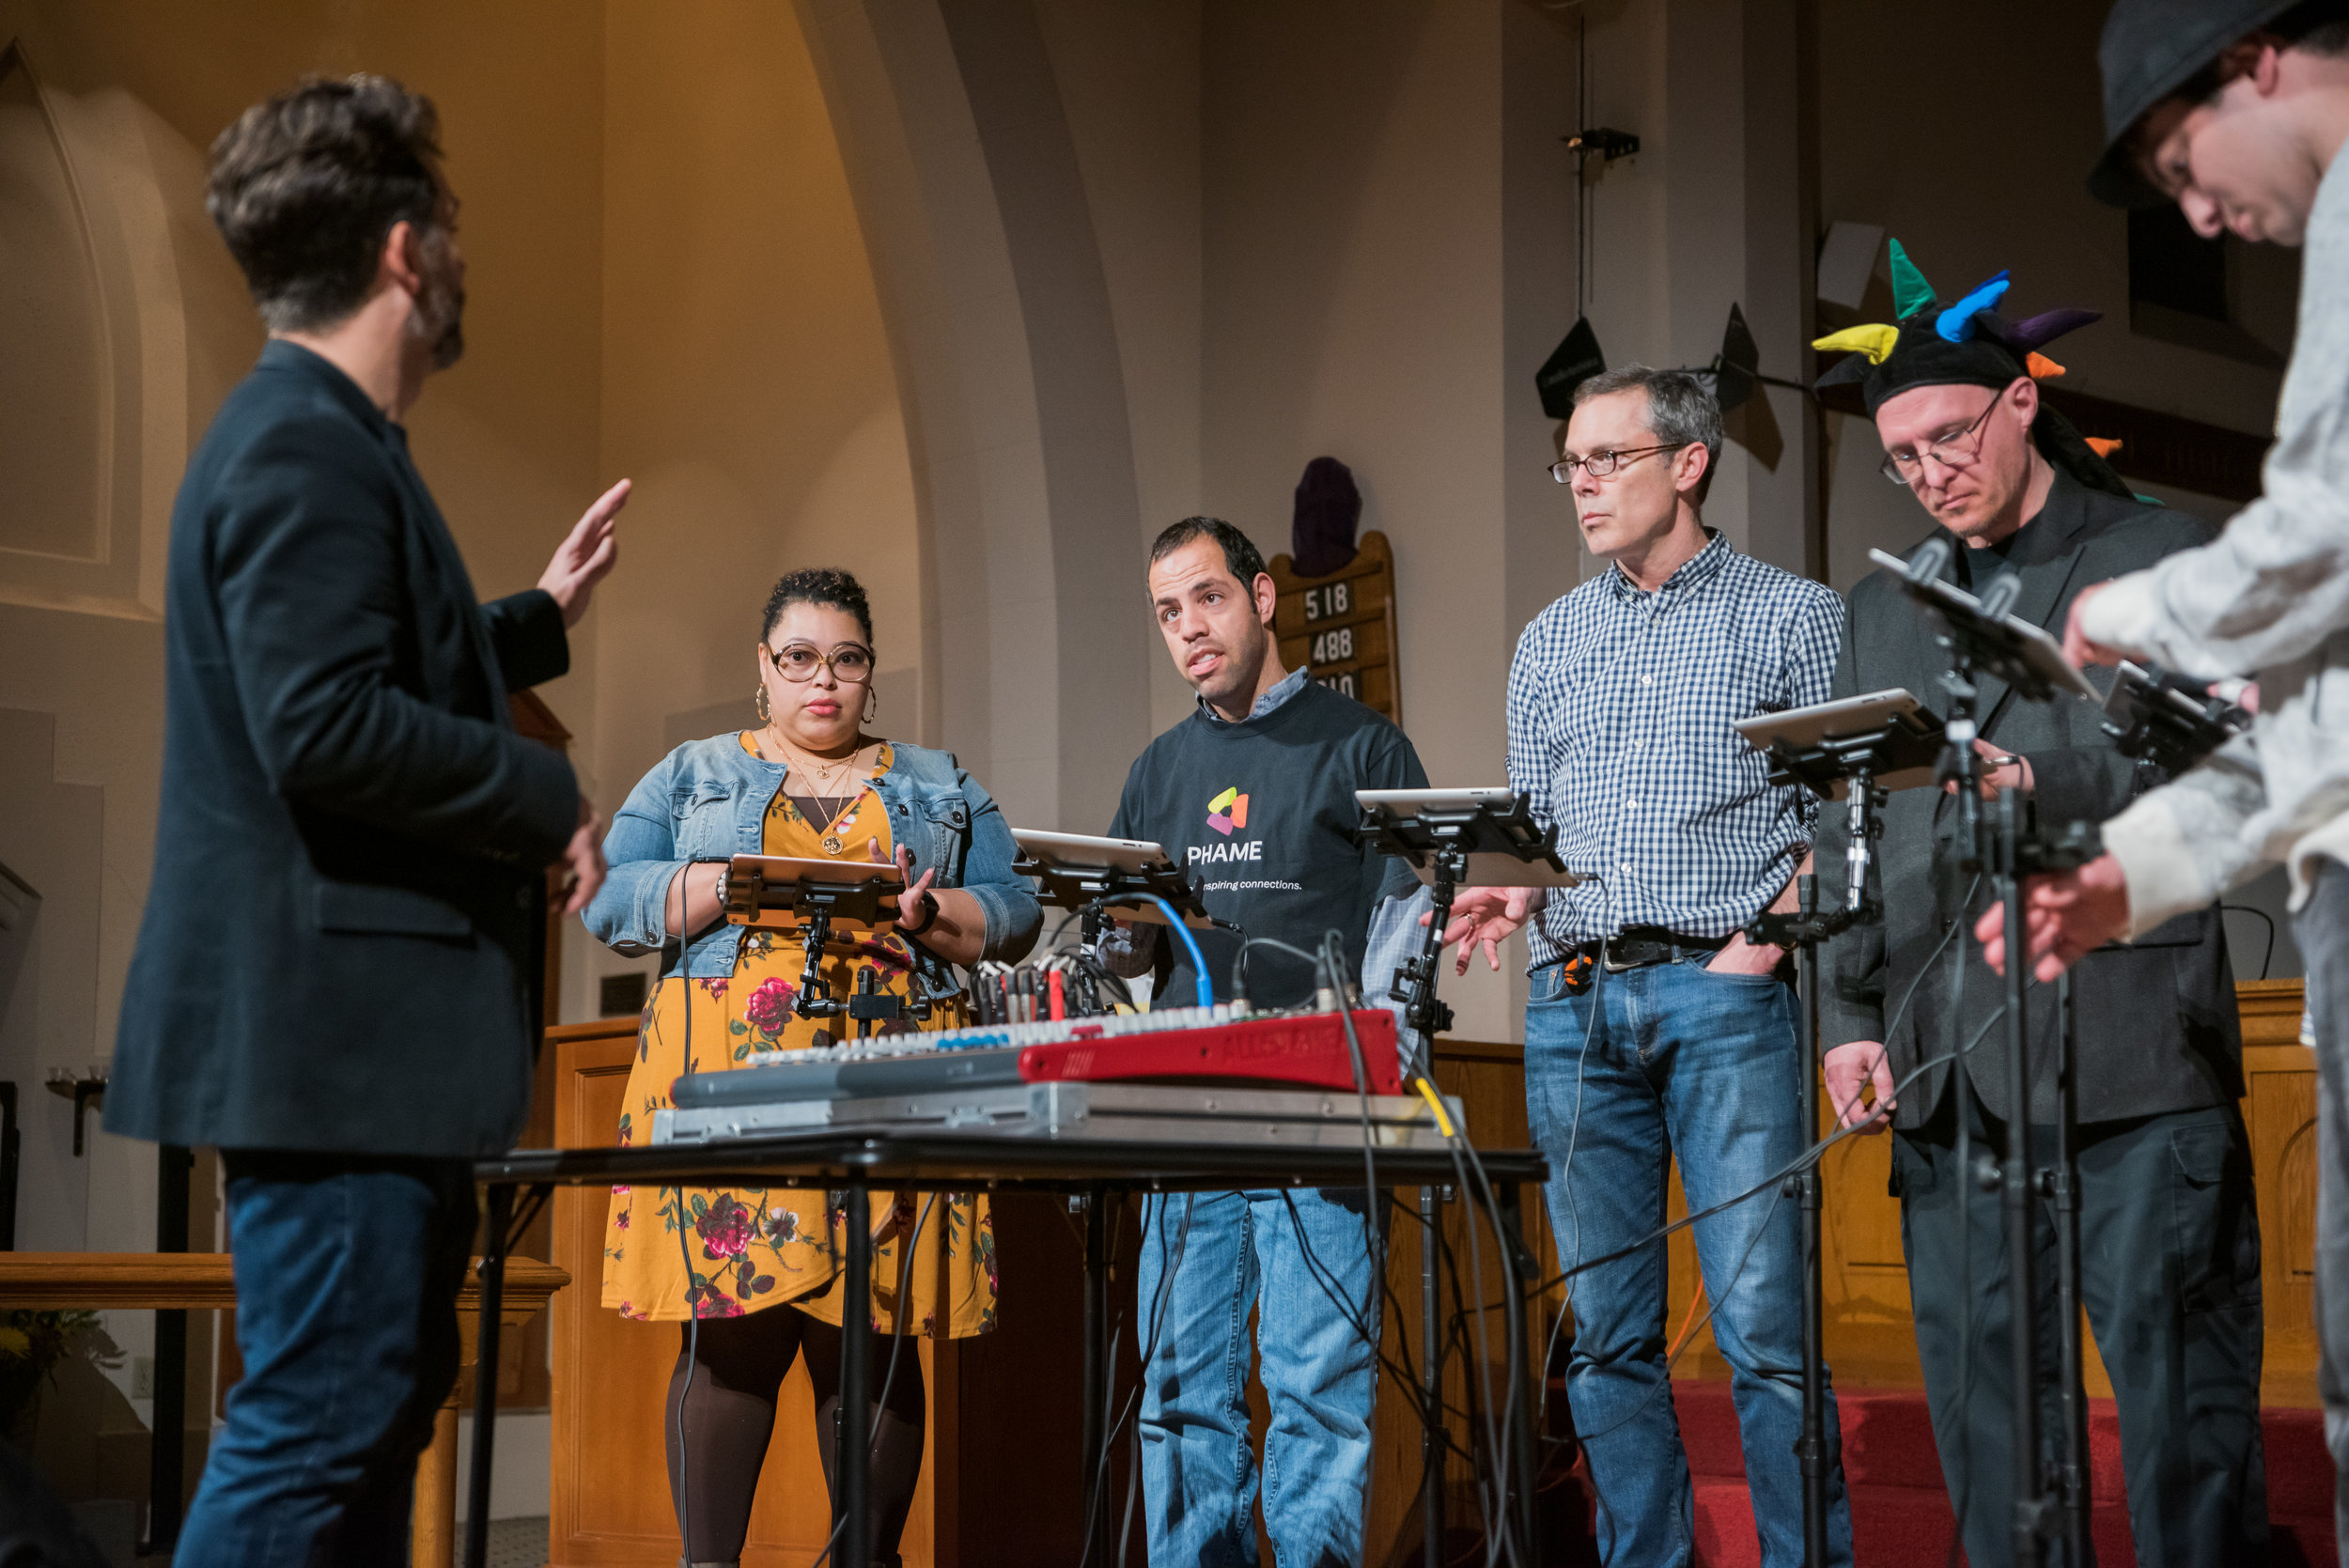 PHAME Director of Arts & Education, Matthew Gailey, conducts the iPad Ensemble. The iPad Ensemble will serve as the orchestra for the production, and will be joined by a string quartet comprised of students from Metropolitan Youth Symphony.